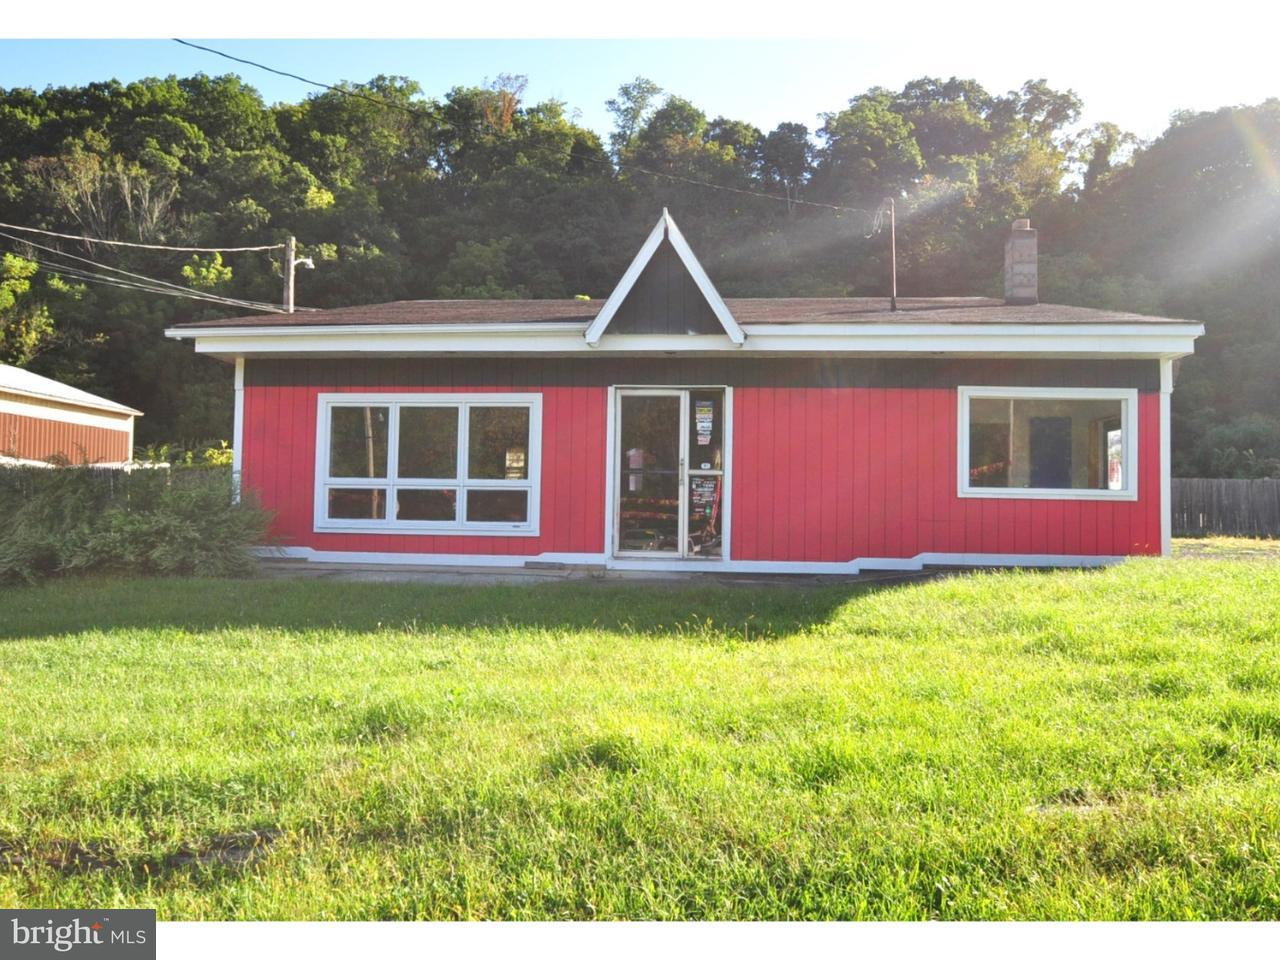 Single Family Home for Sale at 264 RIVERVIEW Drive Walnutport, Pennsylvania 18088 United States